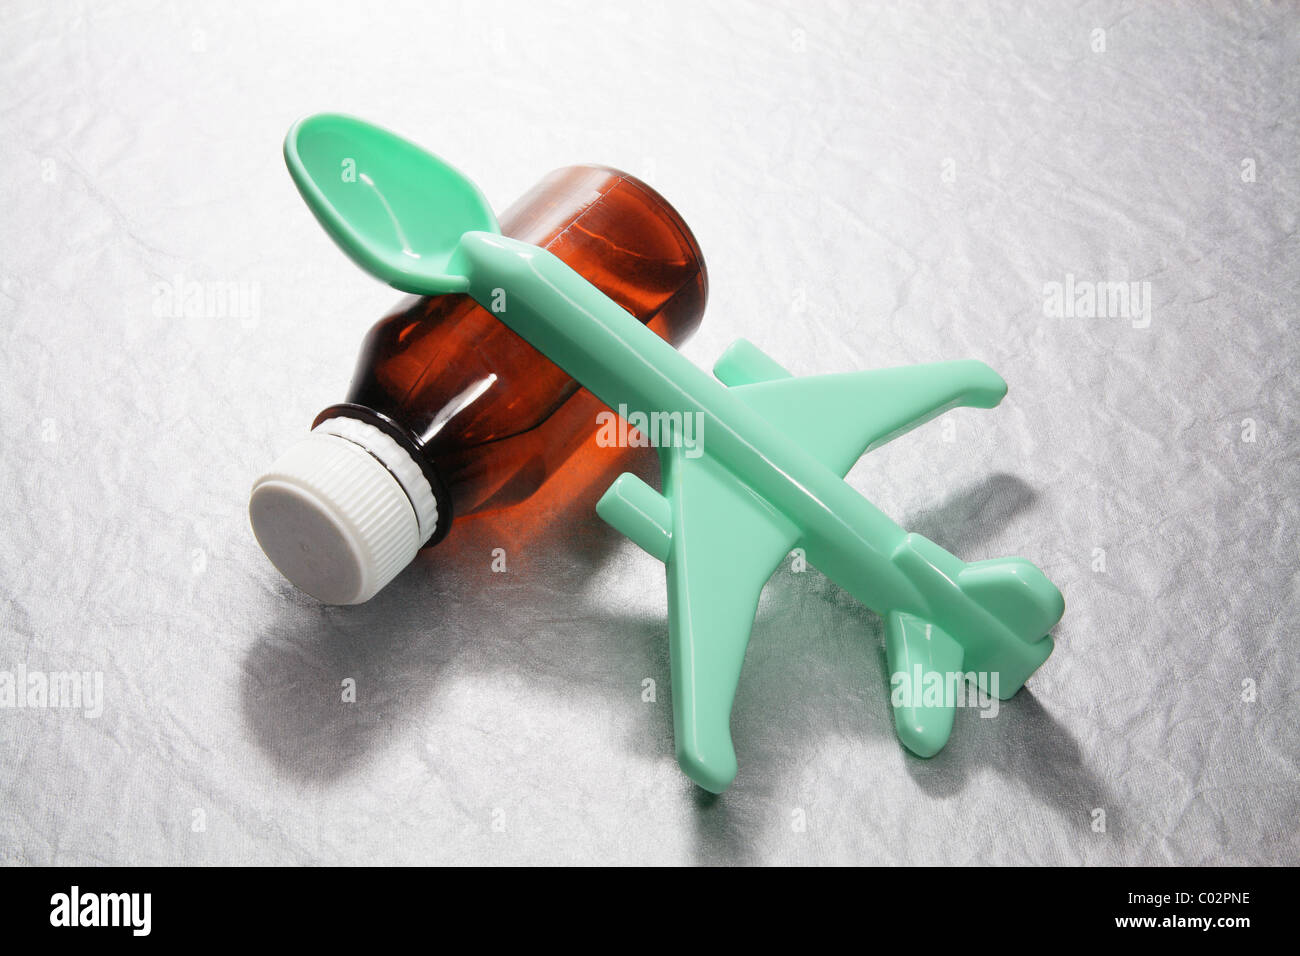 Cough Syrup and Measuring Spoon - Stock Image